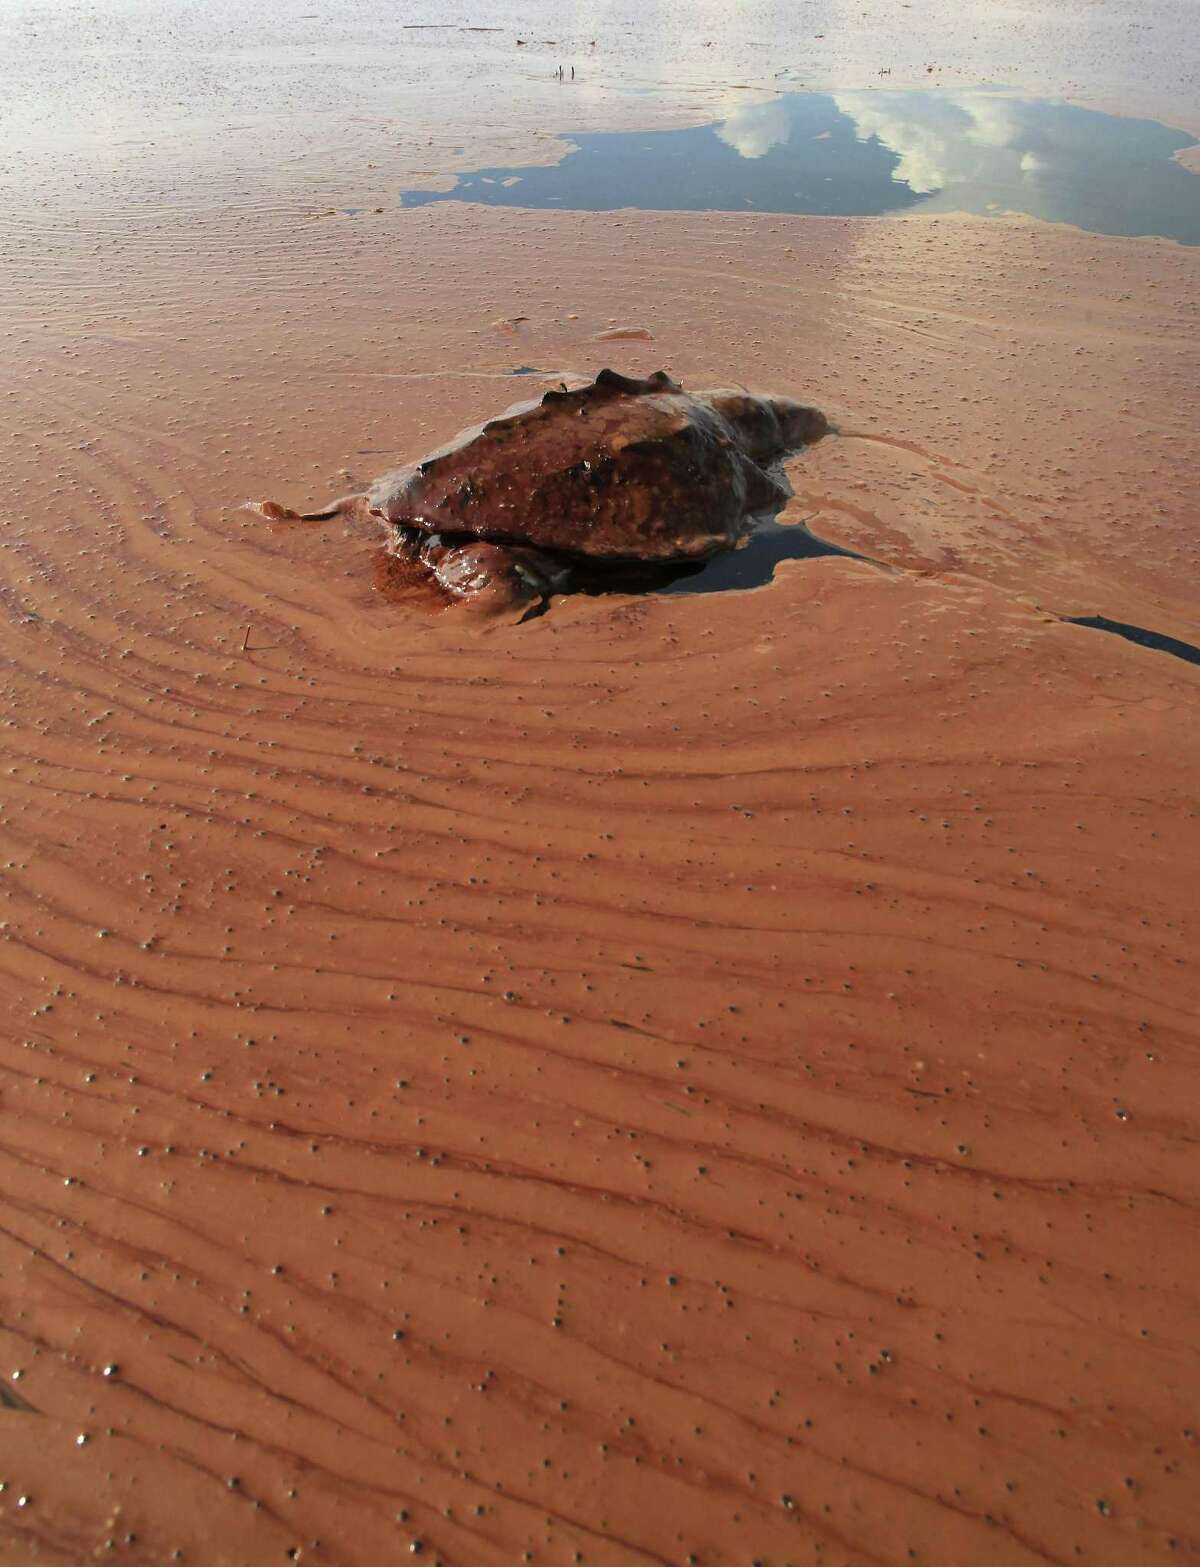 In this June 7, 2010 file photo, a dead turtle floats on a pool of oil from the Deepwater Horizon spill in Barataria Bay off the coast of Louisiana Monday, June, 7, 2010.